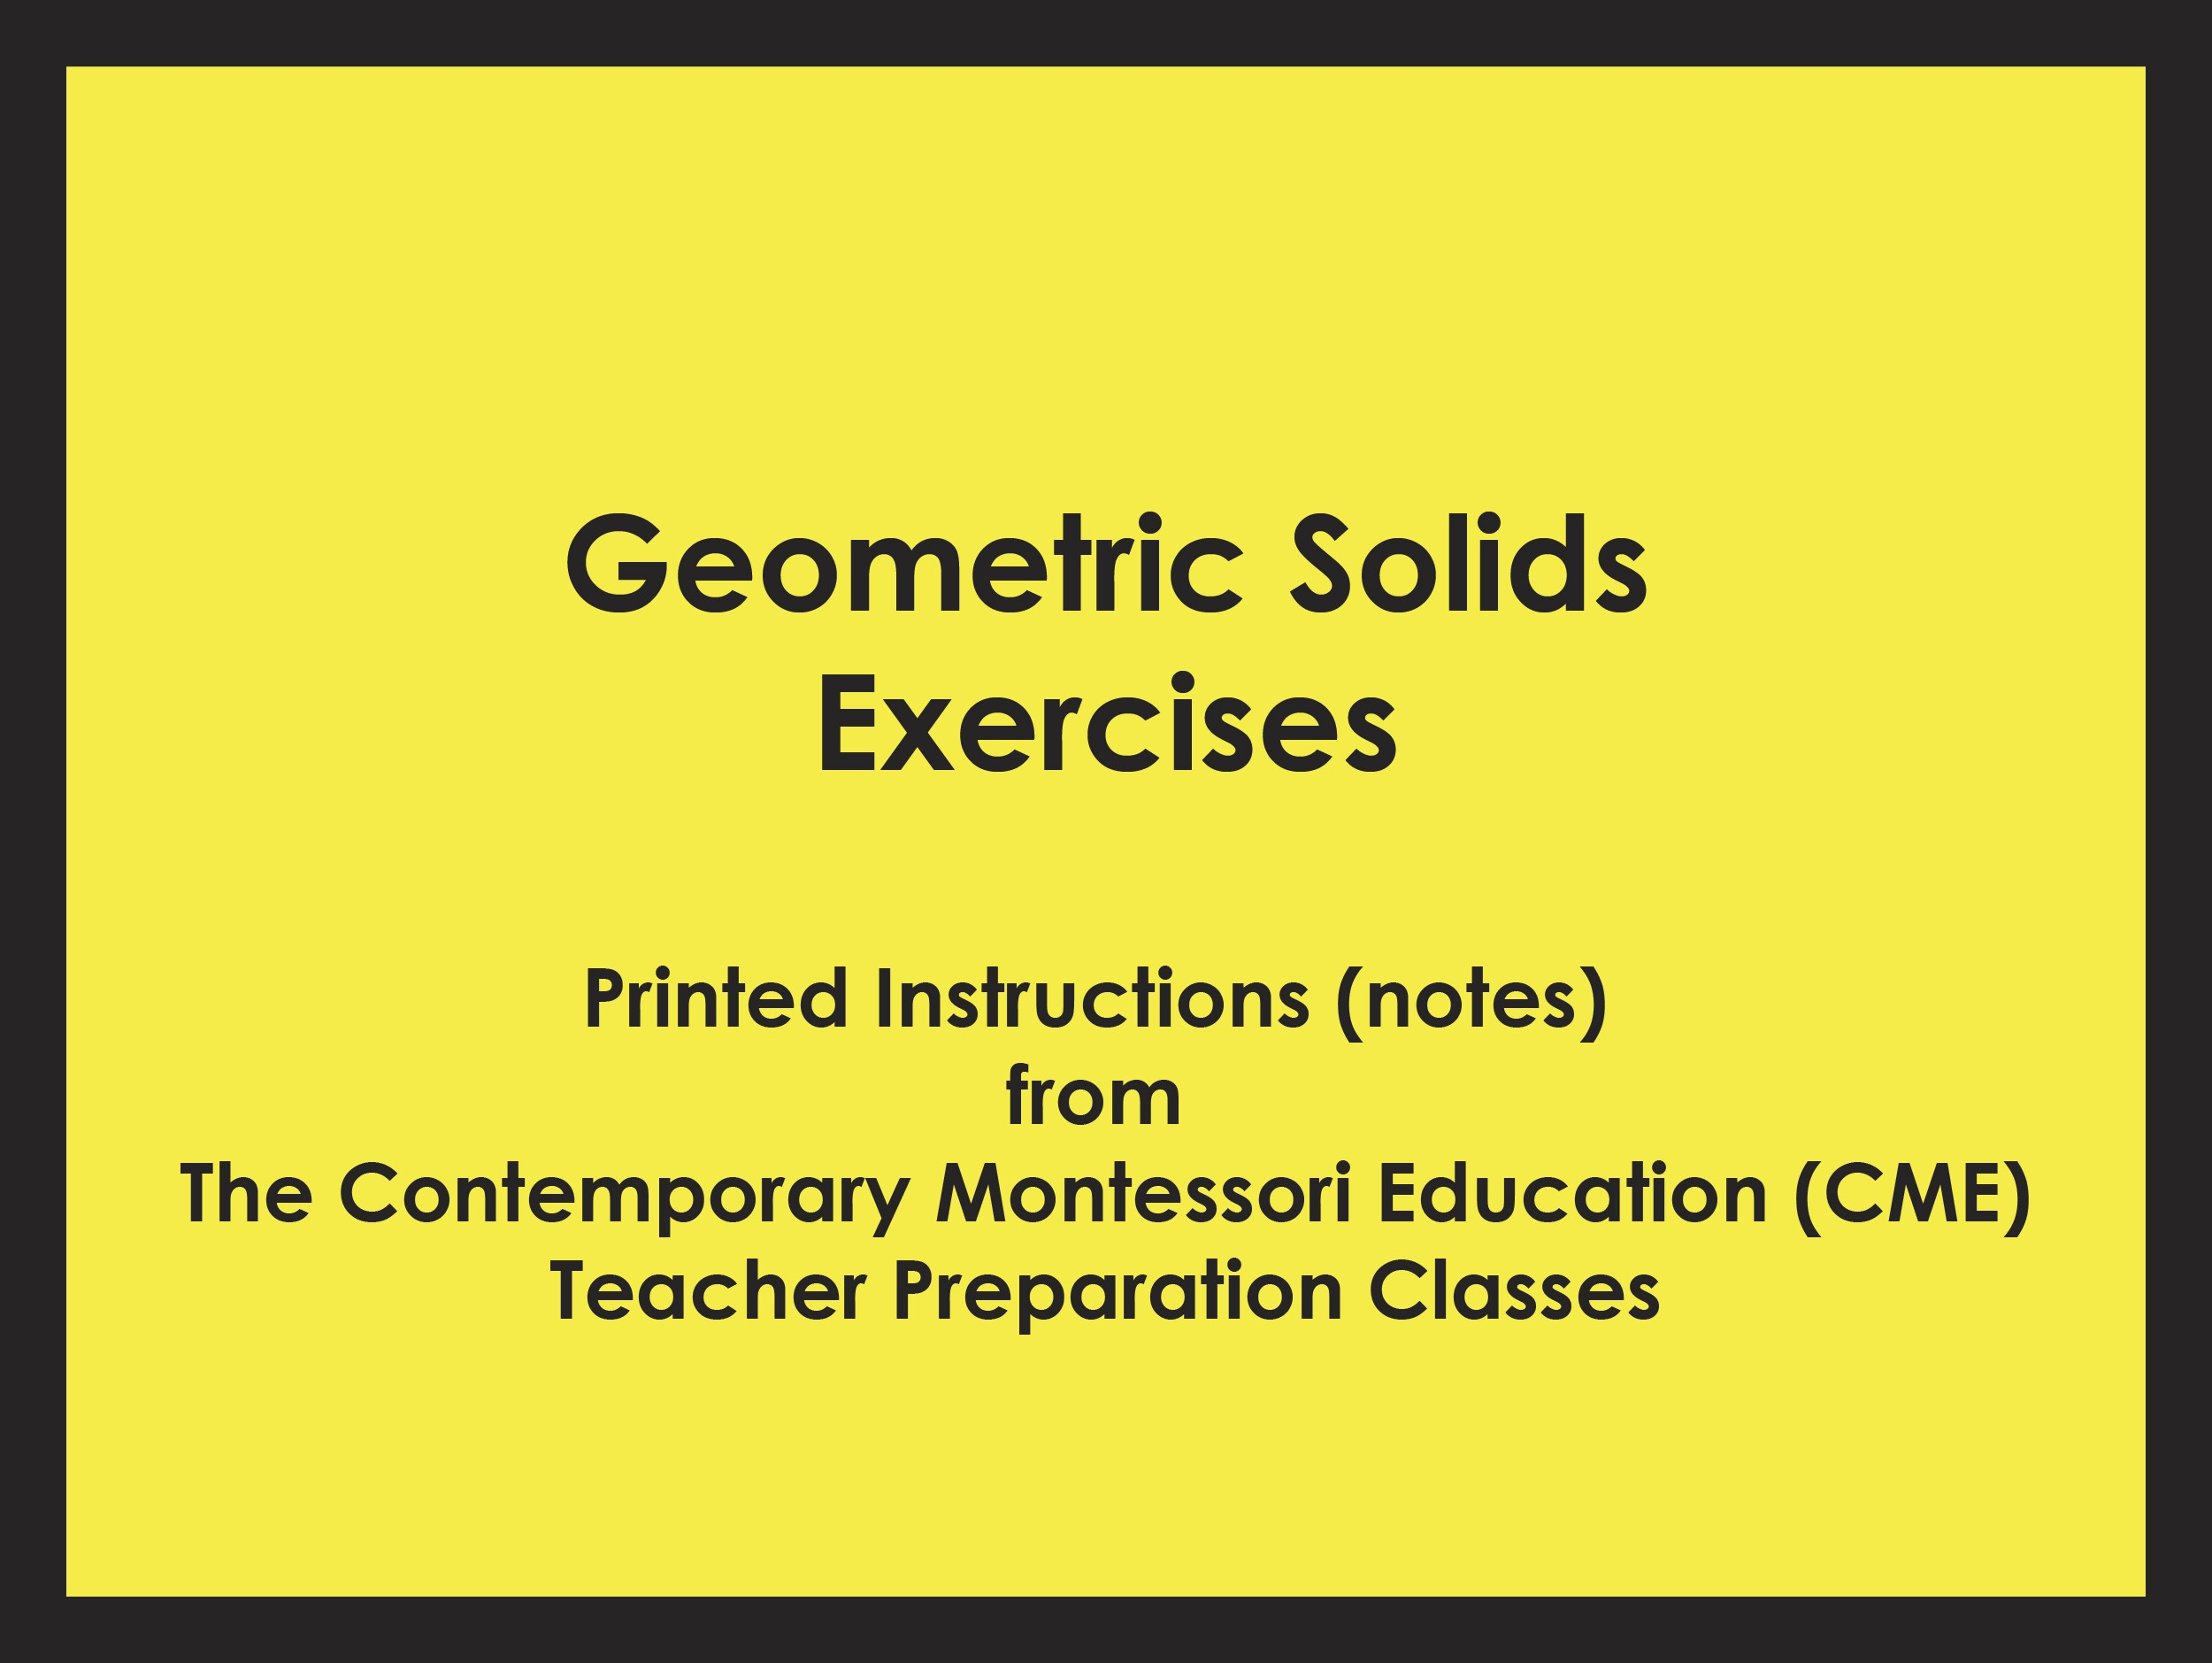 Geometric Solids Exercises (CME notes) ● SENS-CME-030